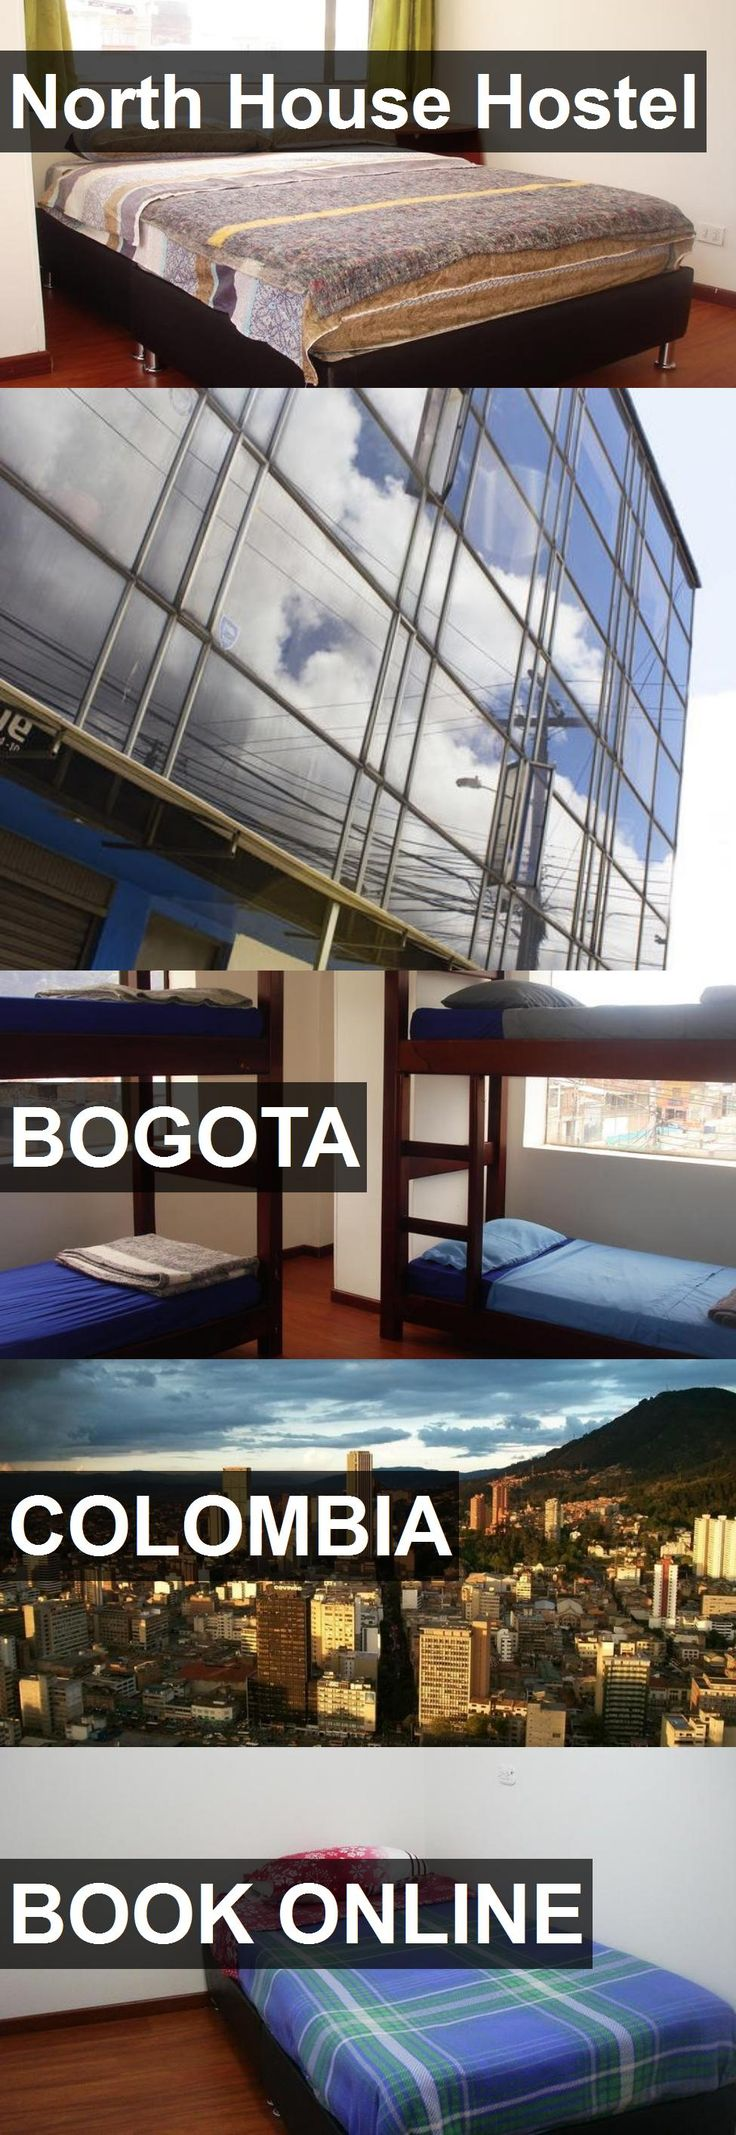 North House Hostel in Bogota, Colombia. For more information, photos, reviews and best prices please follow the link. #Colombia #Bogota #travel #vacation #hostel